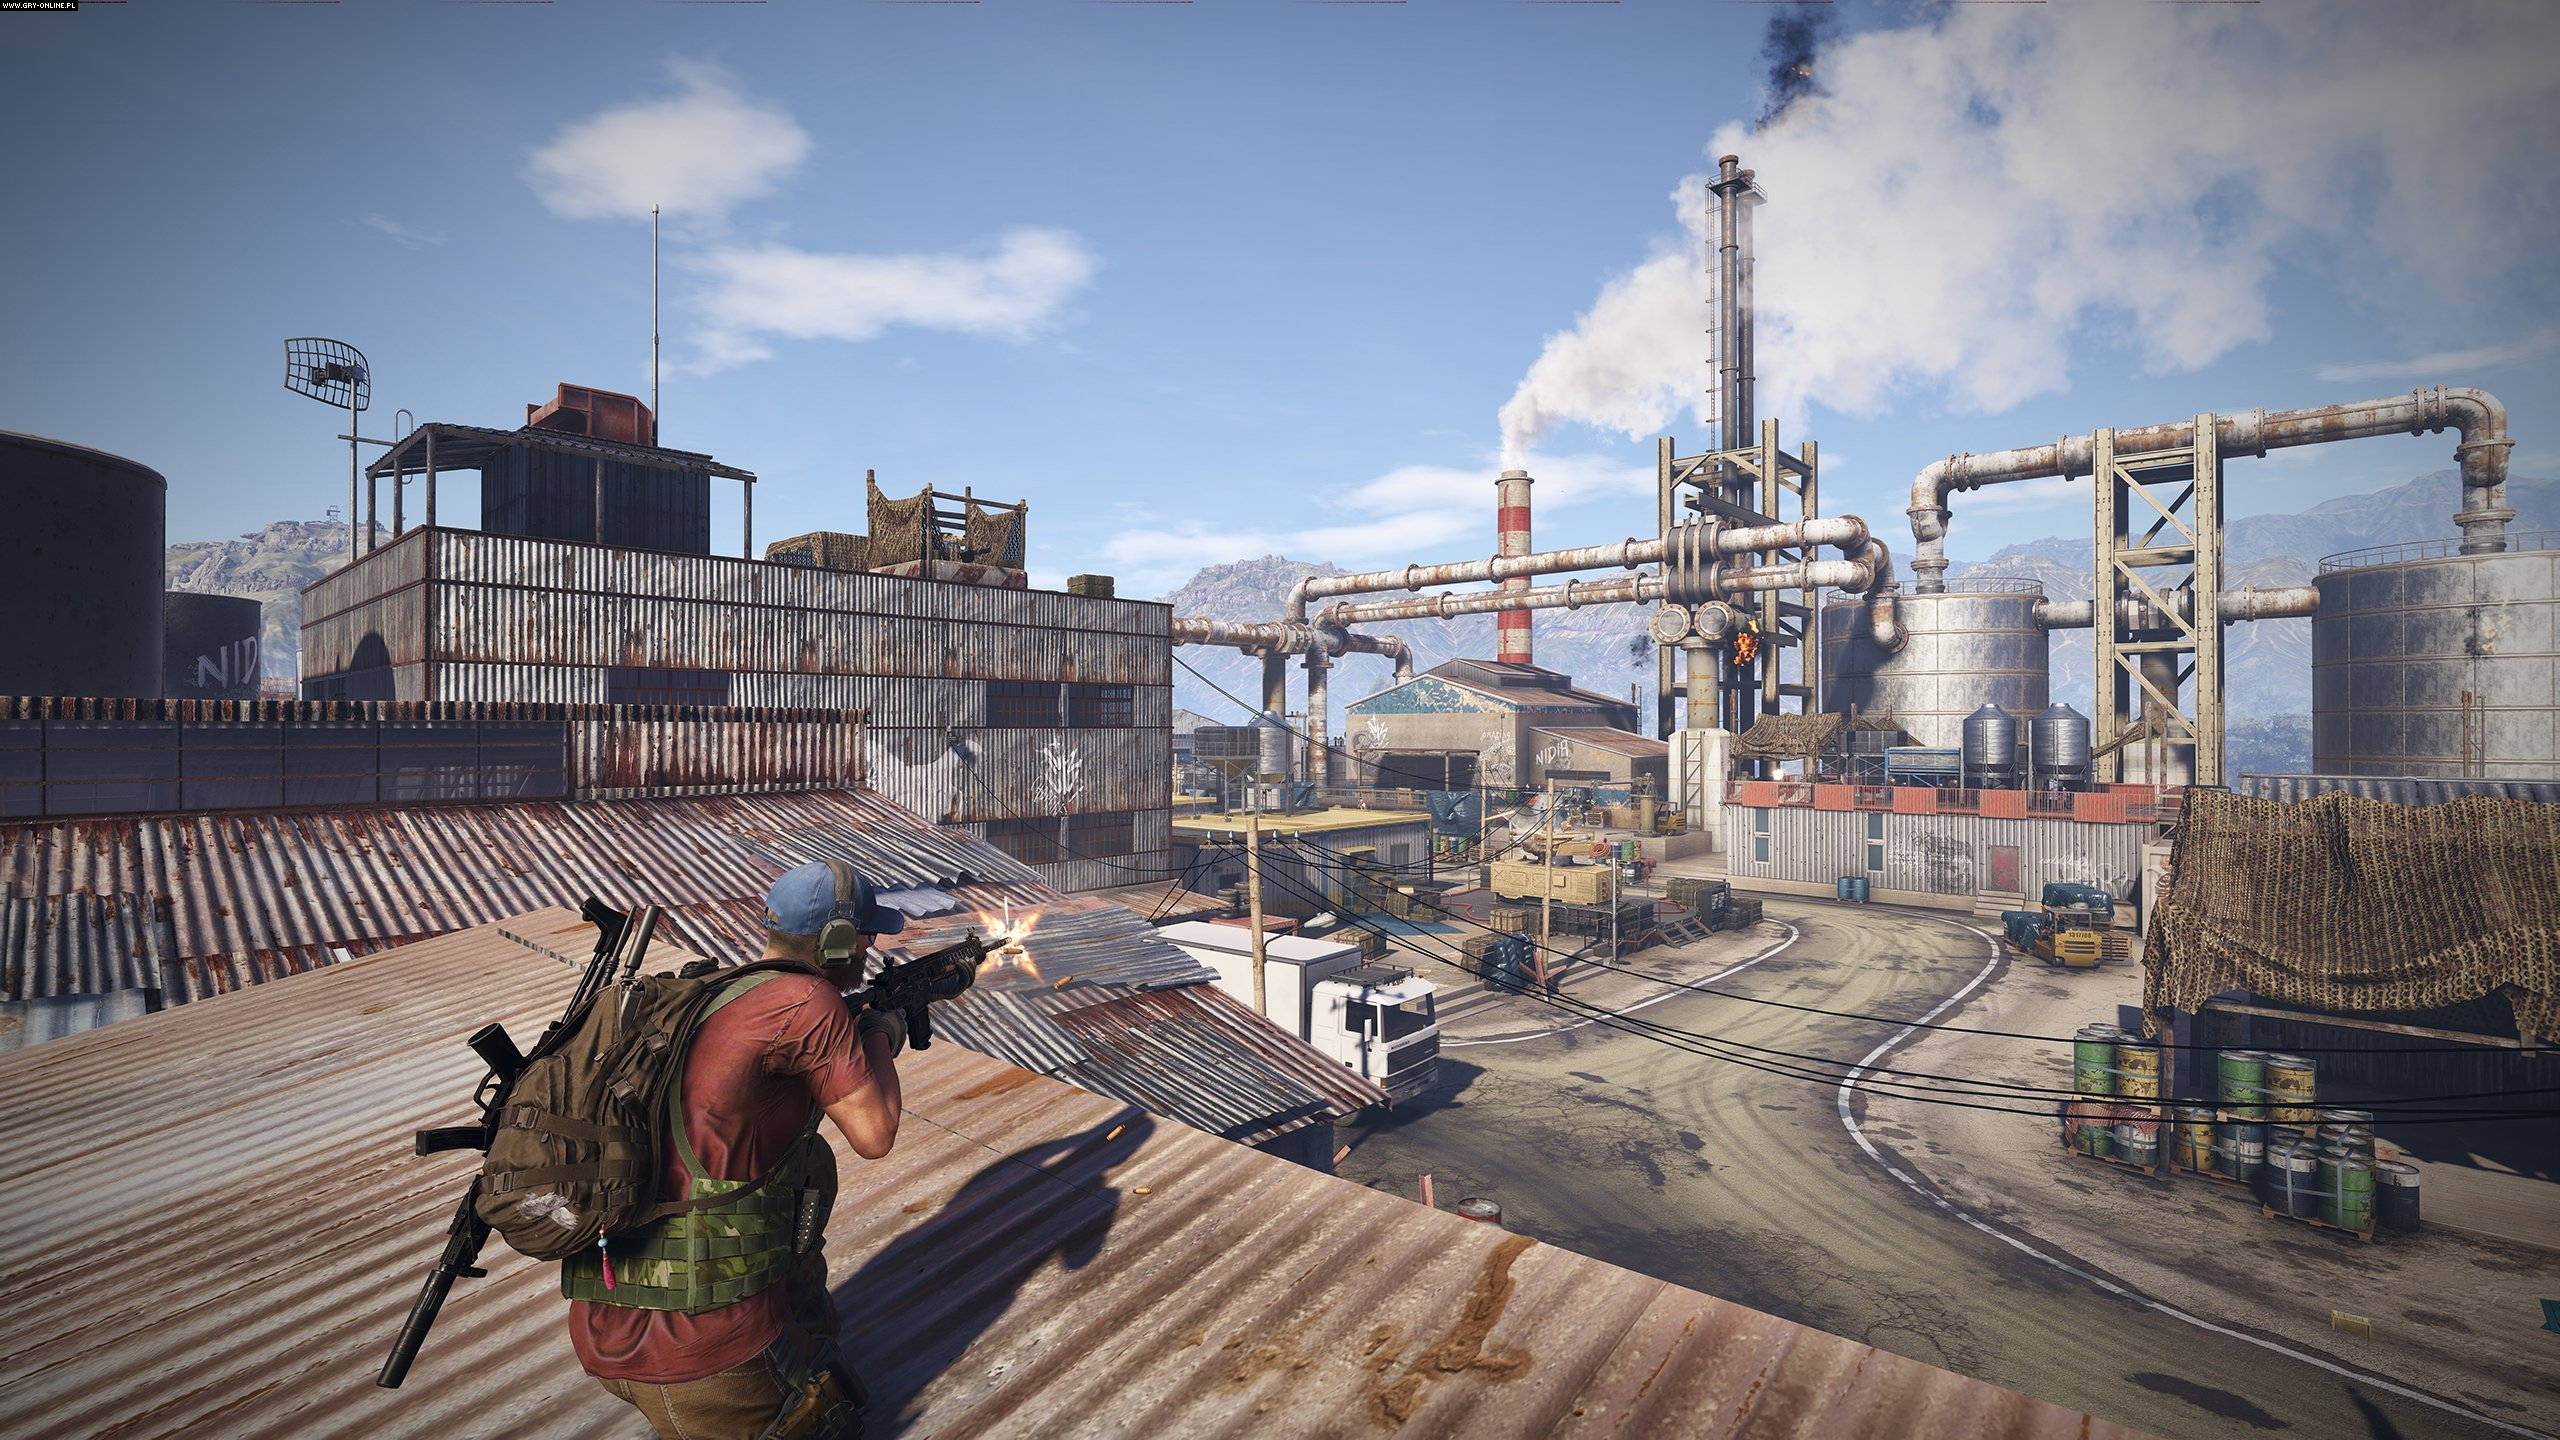 Tom Clancy's Ghost Recon: Wildlands PC, PS4, XONE Games Image 16/64, Ubisoft